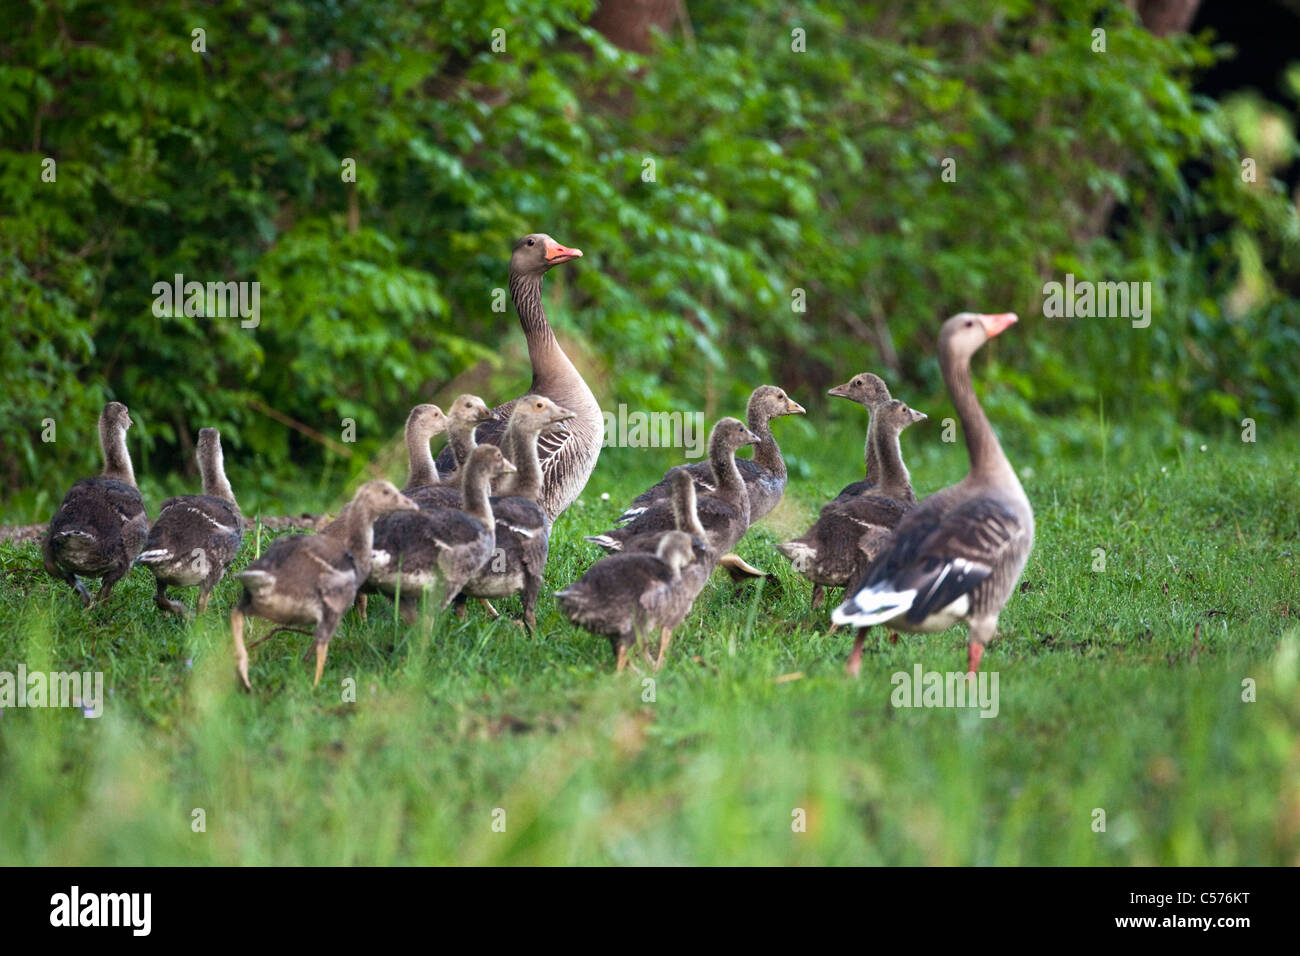 The Netherlands, Giethoorn, Greylag goose and young. - Stock Image